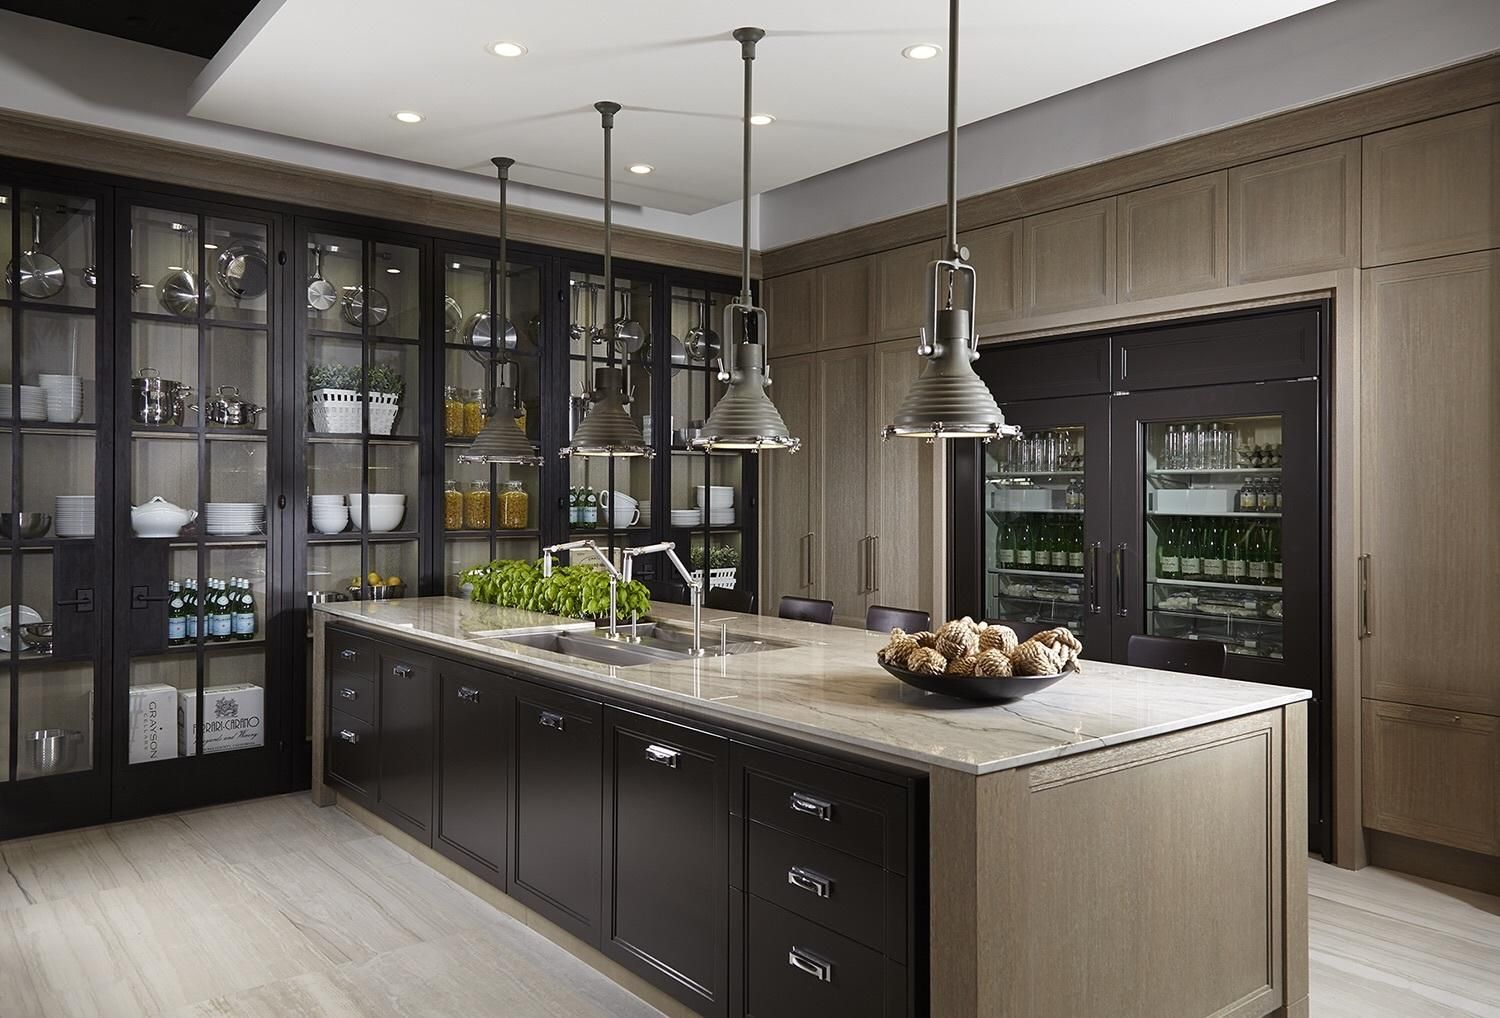 Gorgeous kitchen with display cabinets | Transitional ...